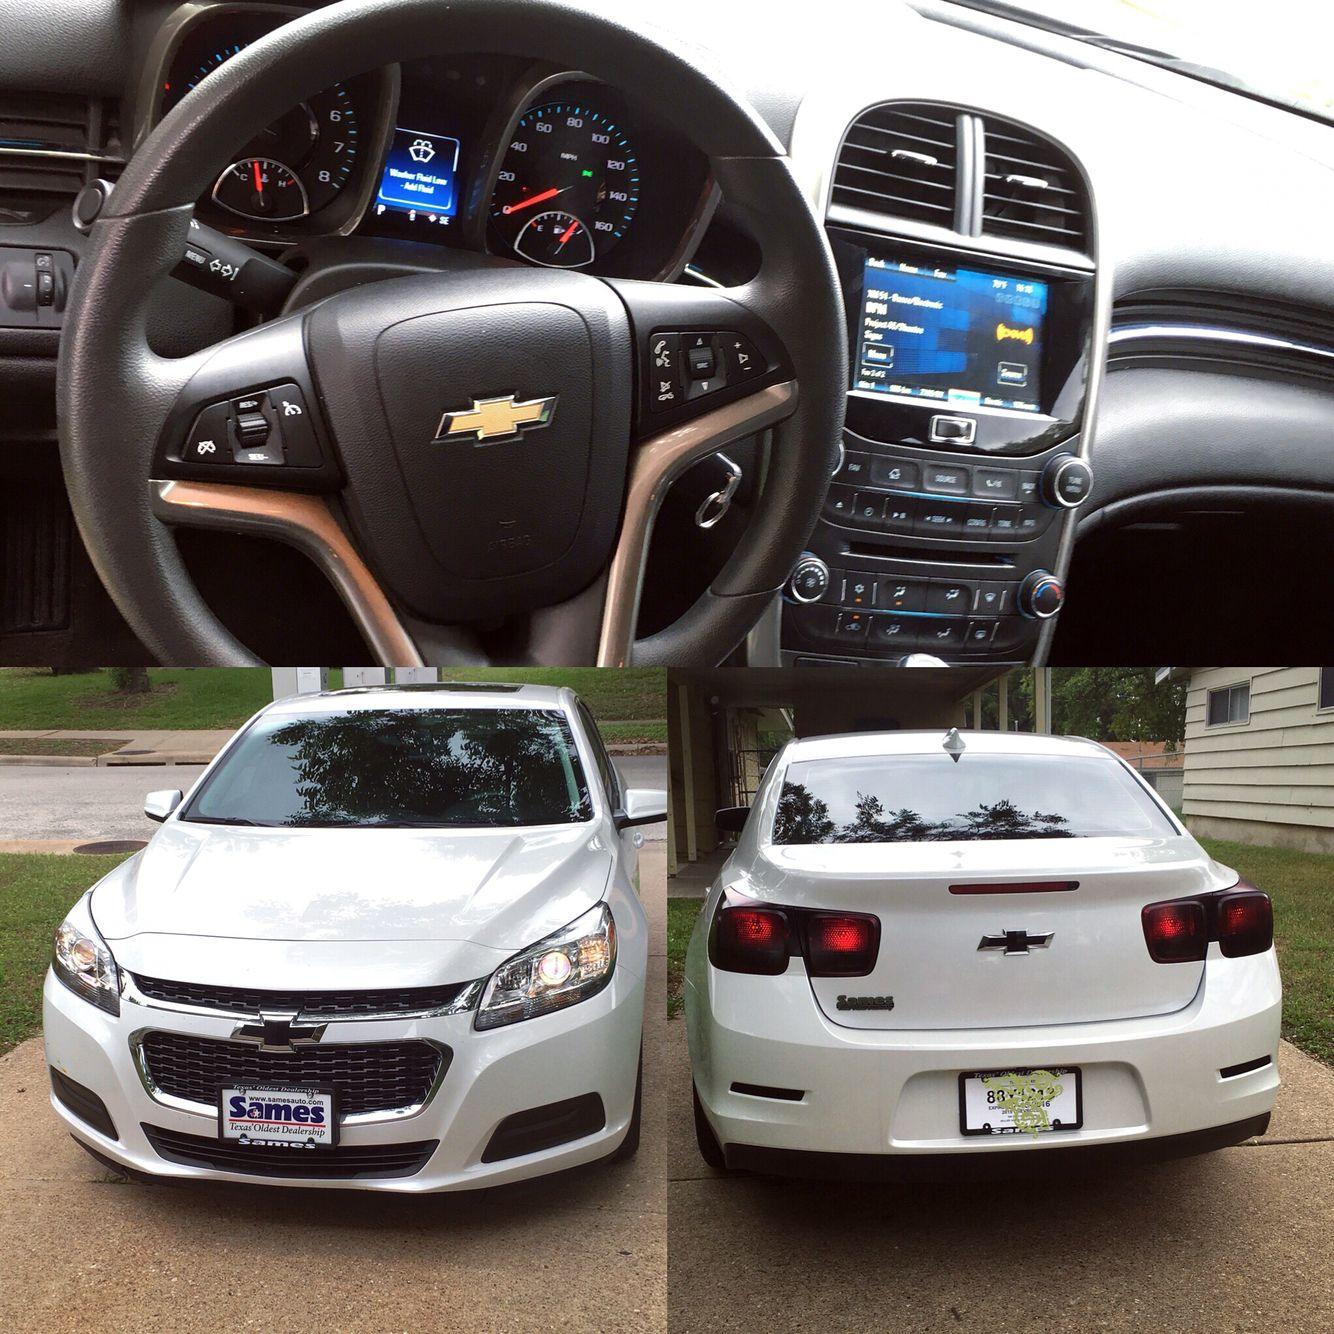 Chevy Malibu 2015 Travel Pinterest